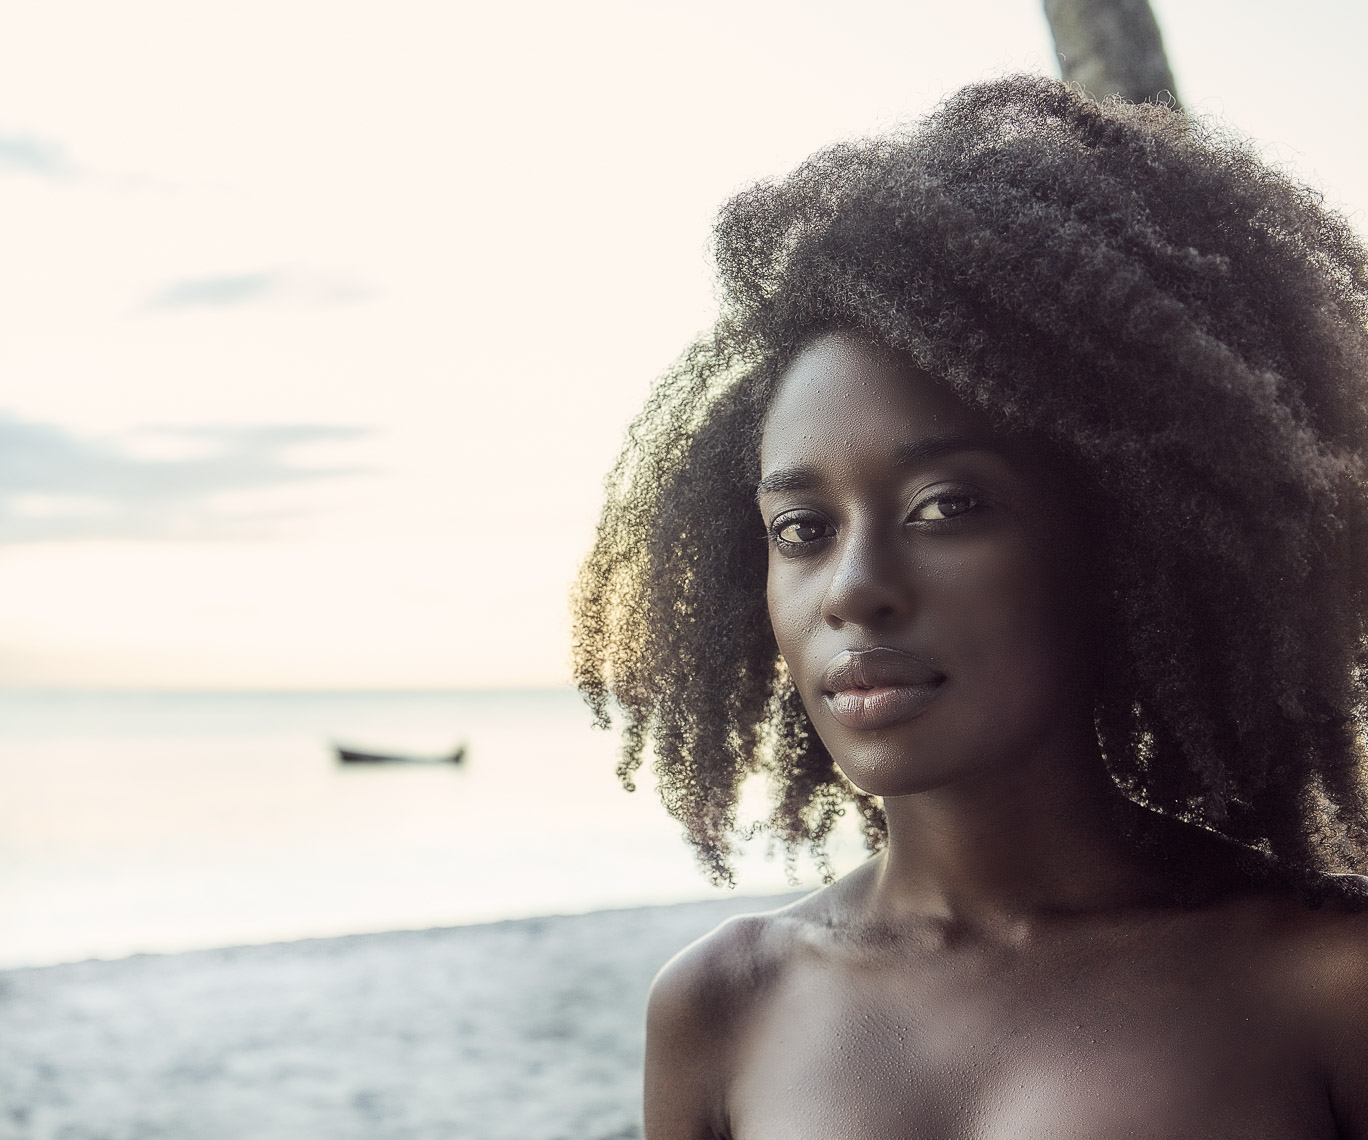 Kevin Steele - portrait on the beach of a beautiful black woman